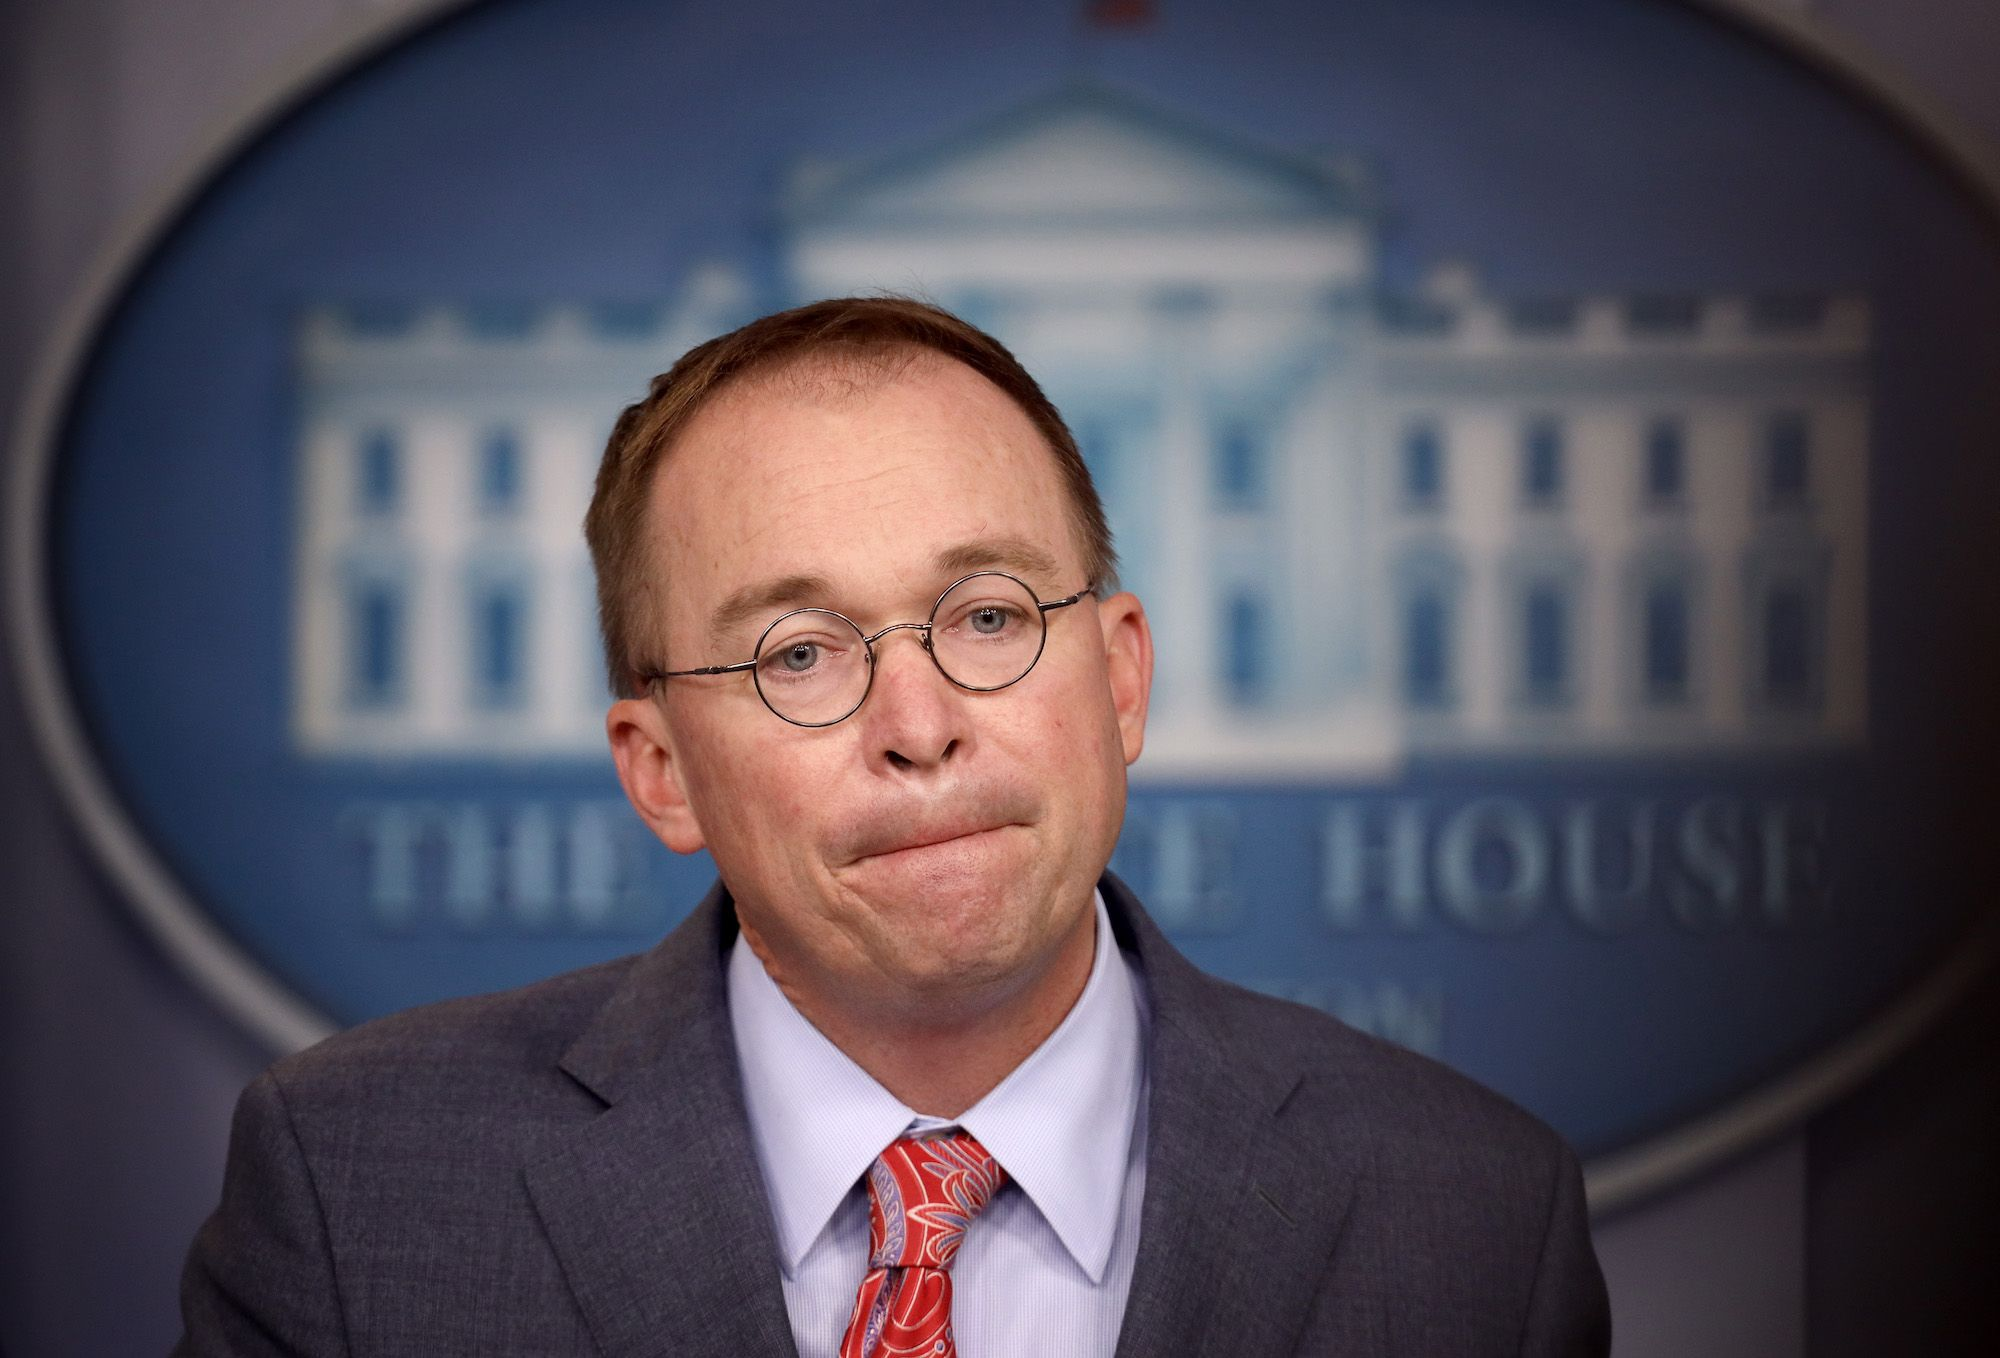 Mick Mulvaney Just Gave Away the Game on Ukraine